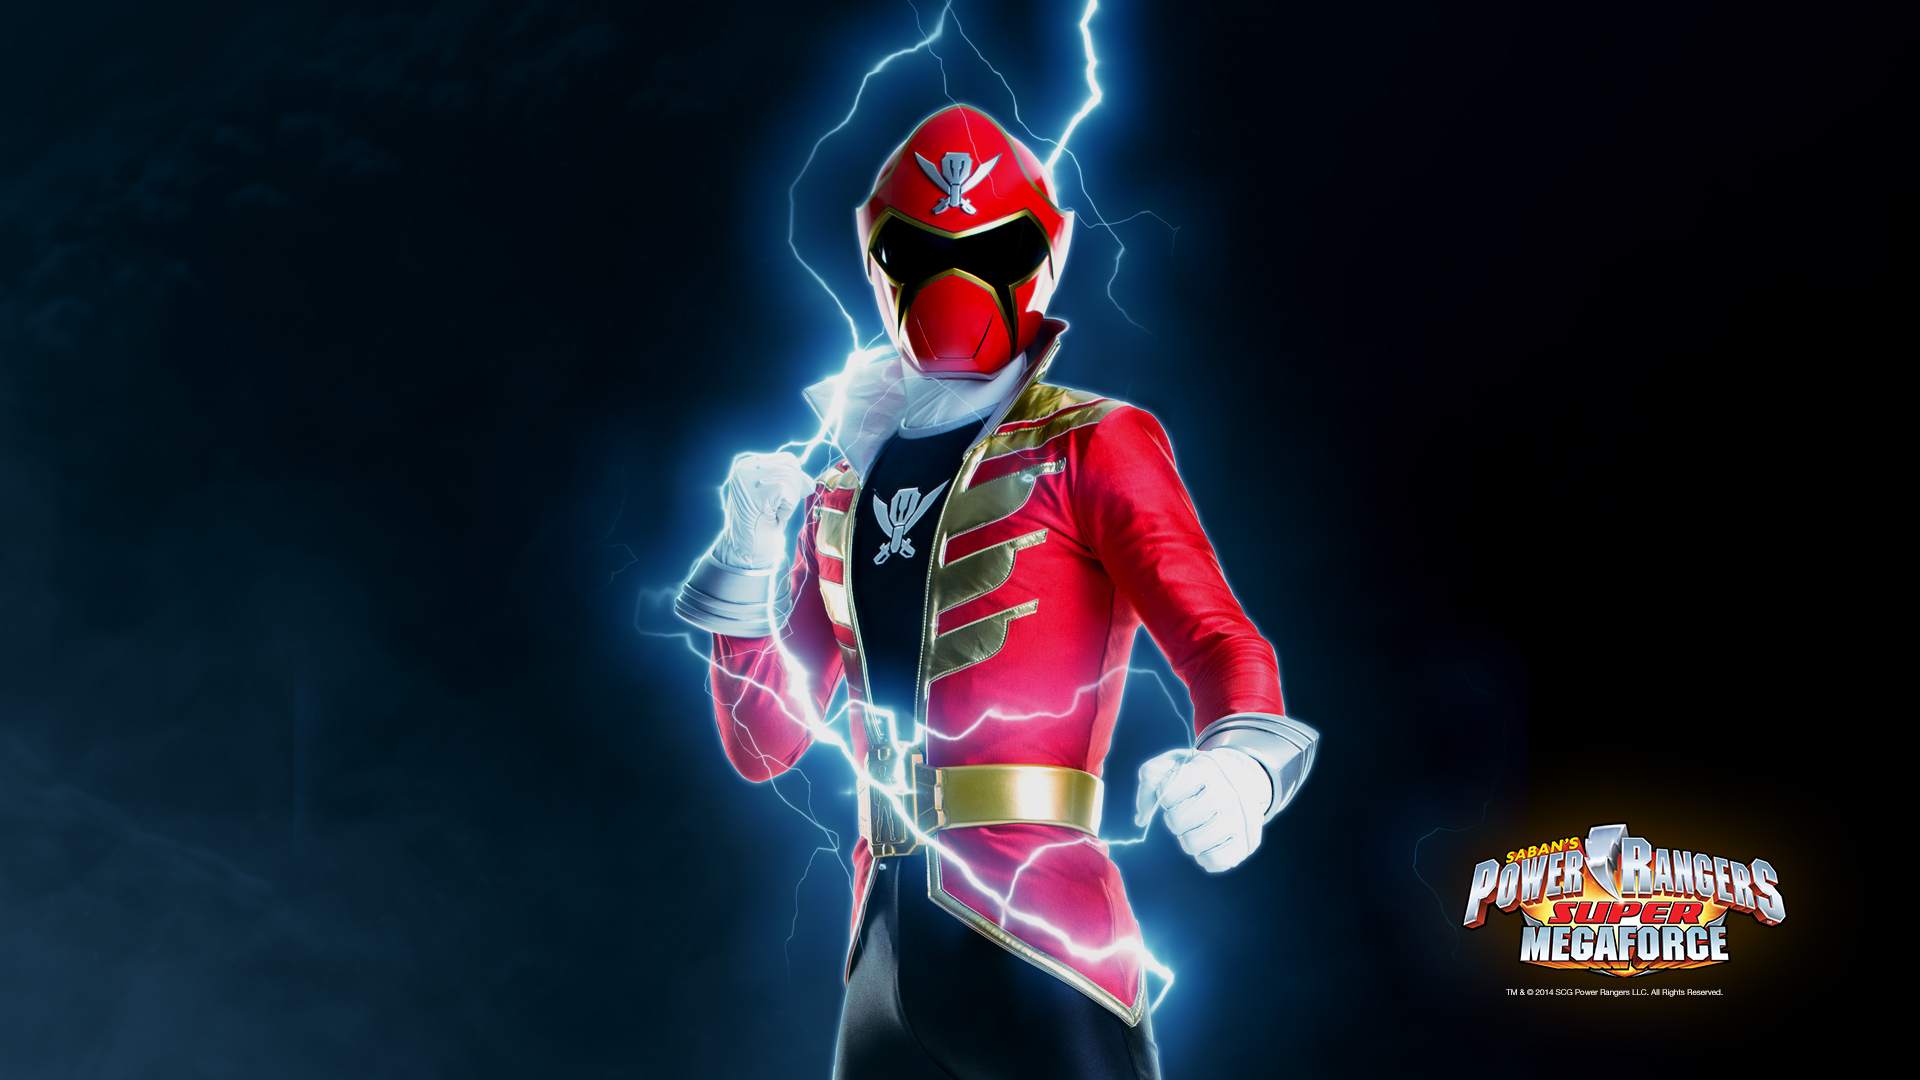 Red Power Ranger Wallpaper - WallpaperSafari